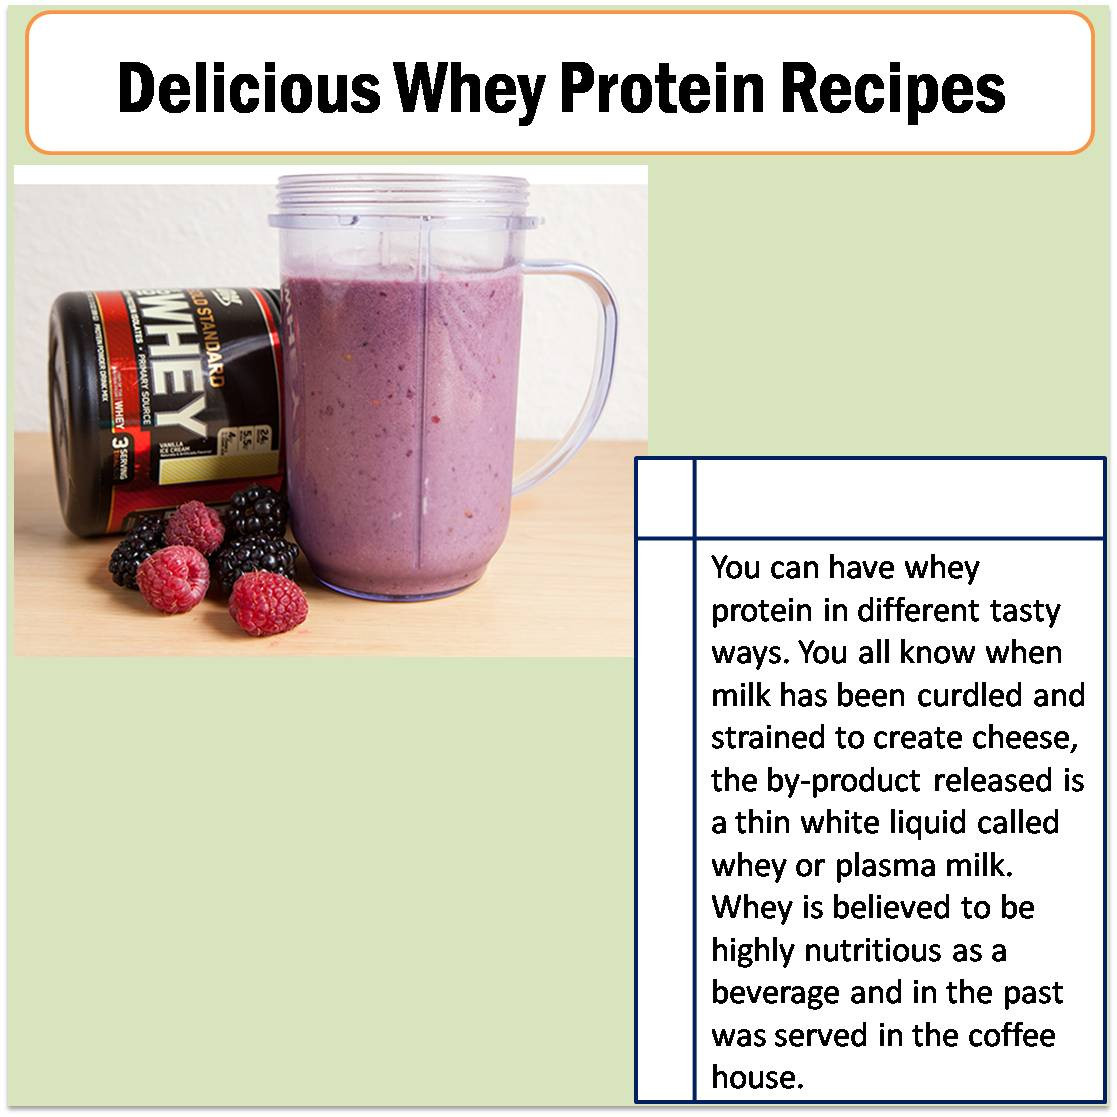 Whey Protein Recipes For Weight Loss  How to reduce fat belly in one week 12 week mass building